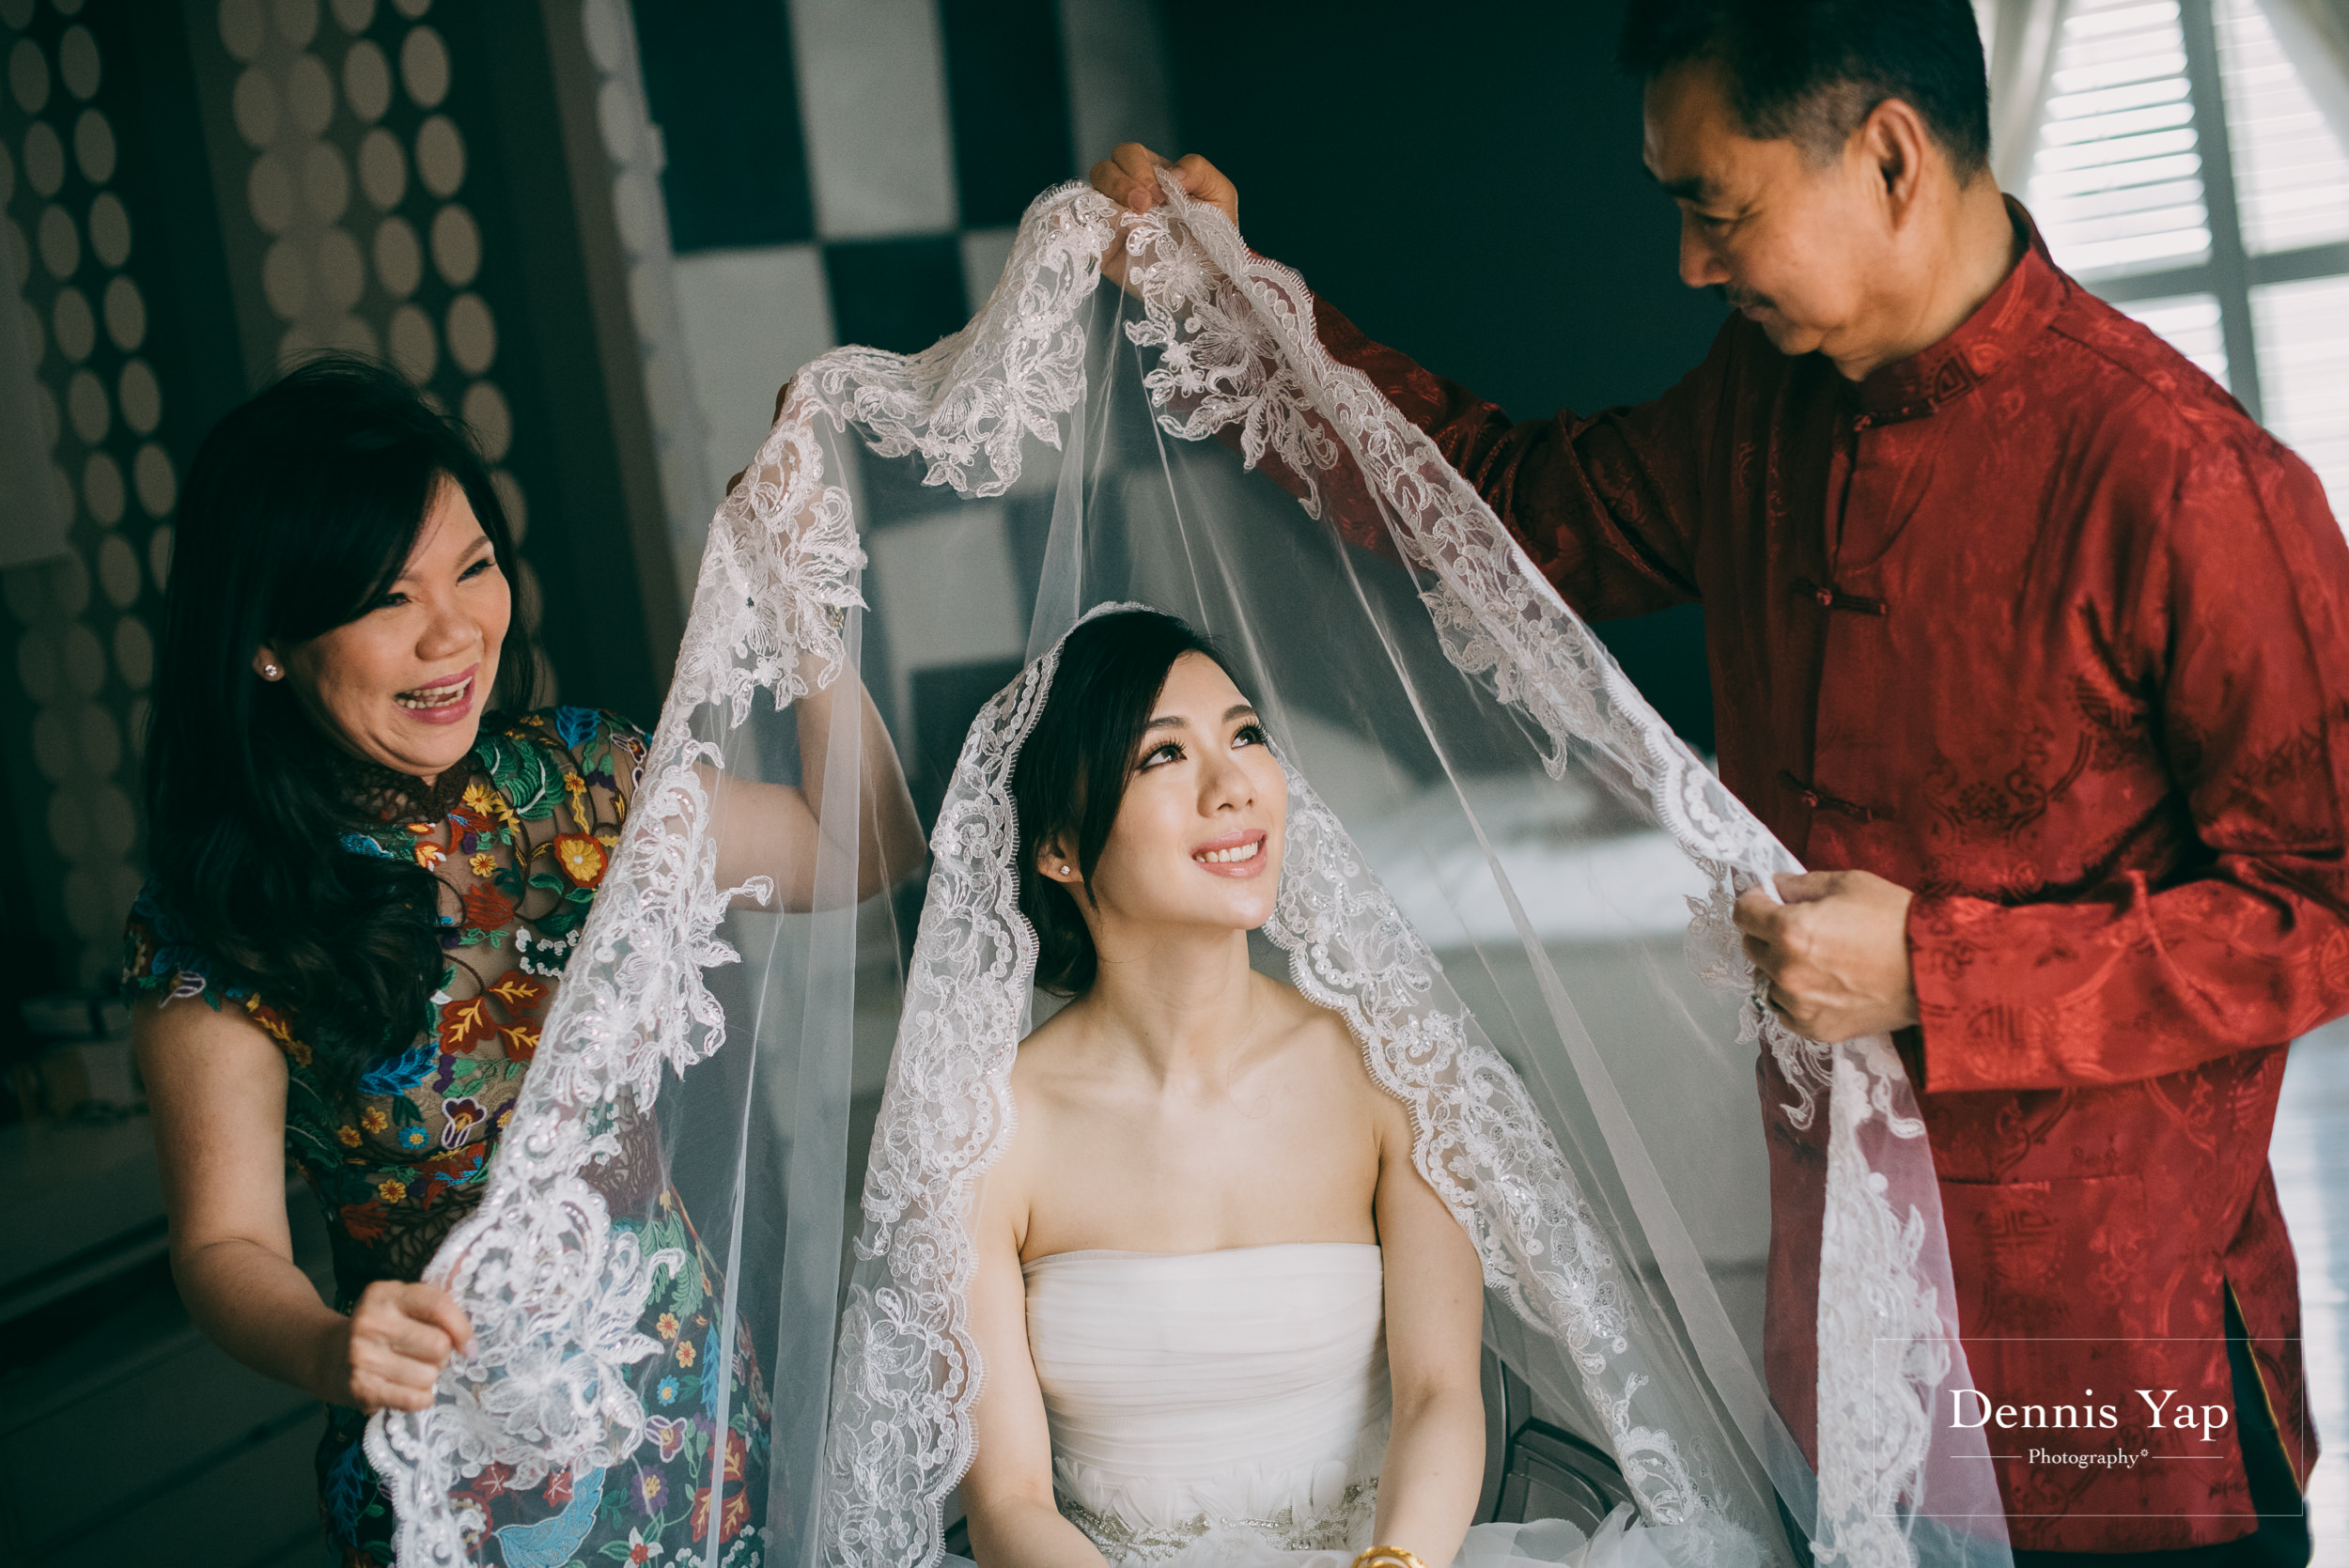 johnson joanne wedding gate crash malaysia wedding photographer dennis yap botanic klang-8.jpg